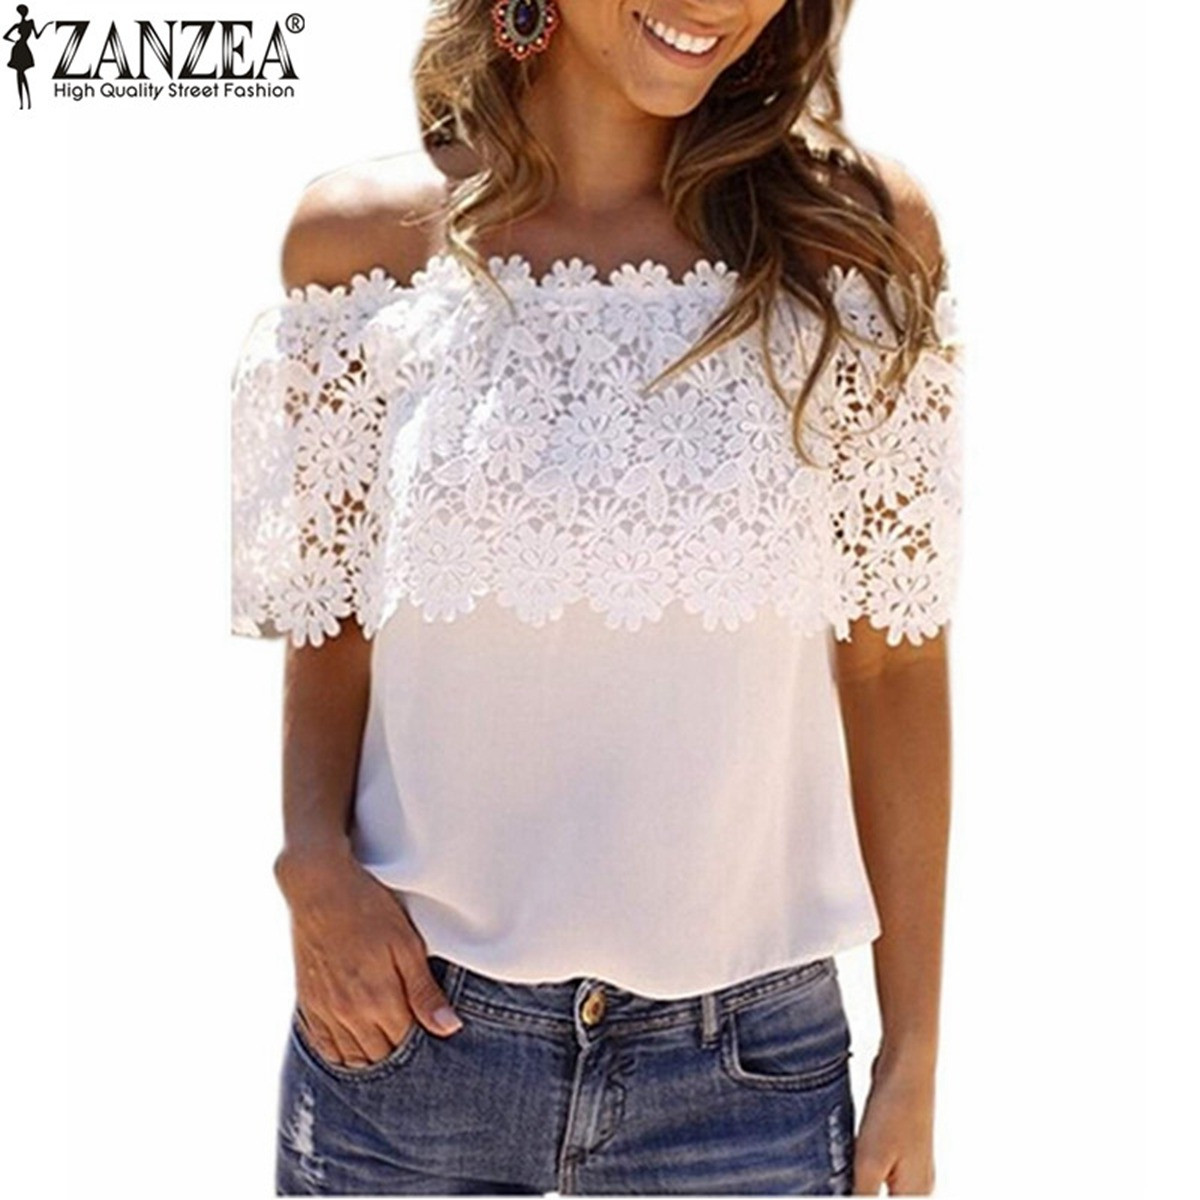 ZANZEA Women 2016 Summer Chiffon Lace Crochet   Blouse     Shirts   Sexy Tops Casual Off Shoulder Short Sleeve Plus Size Female Blusas